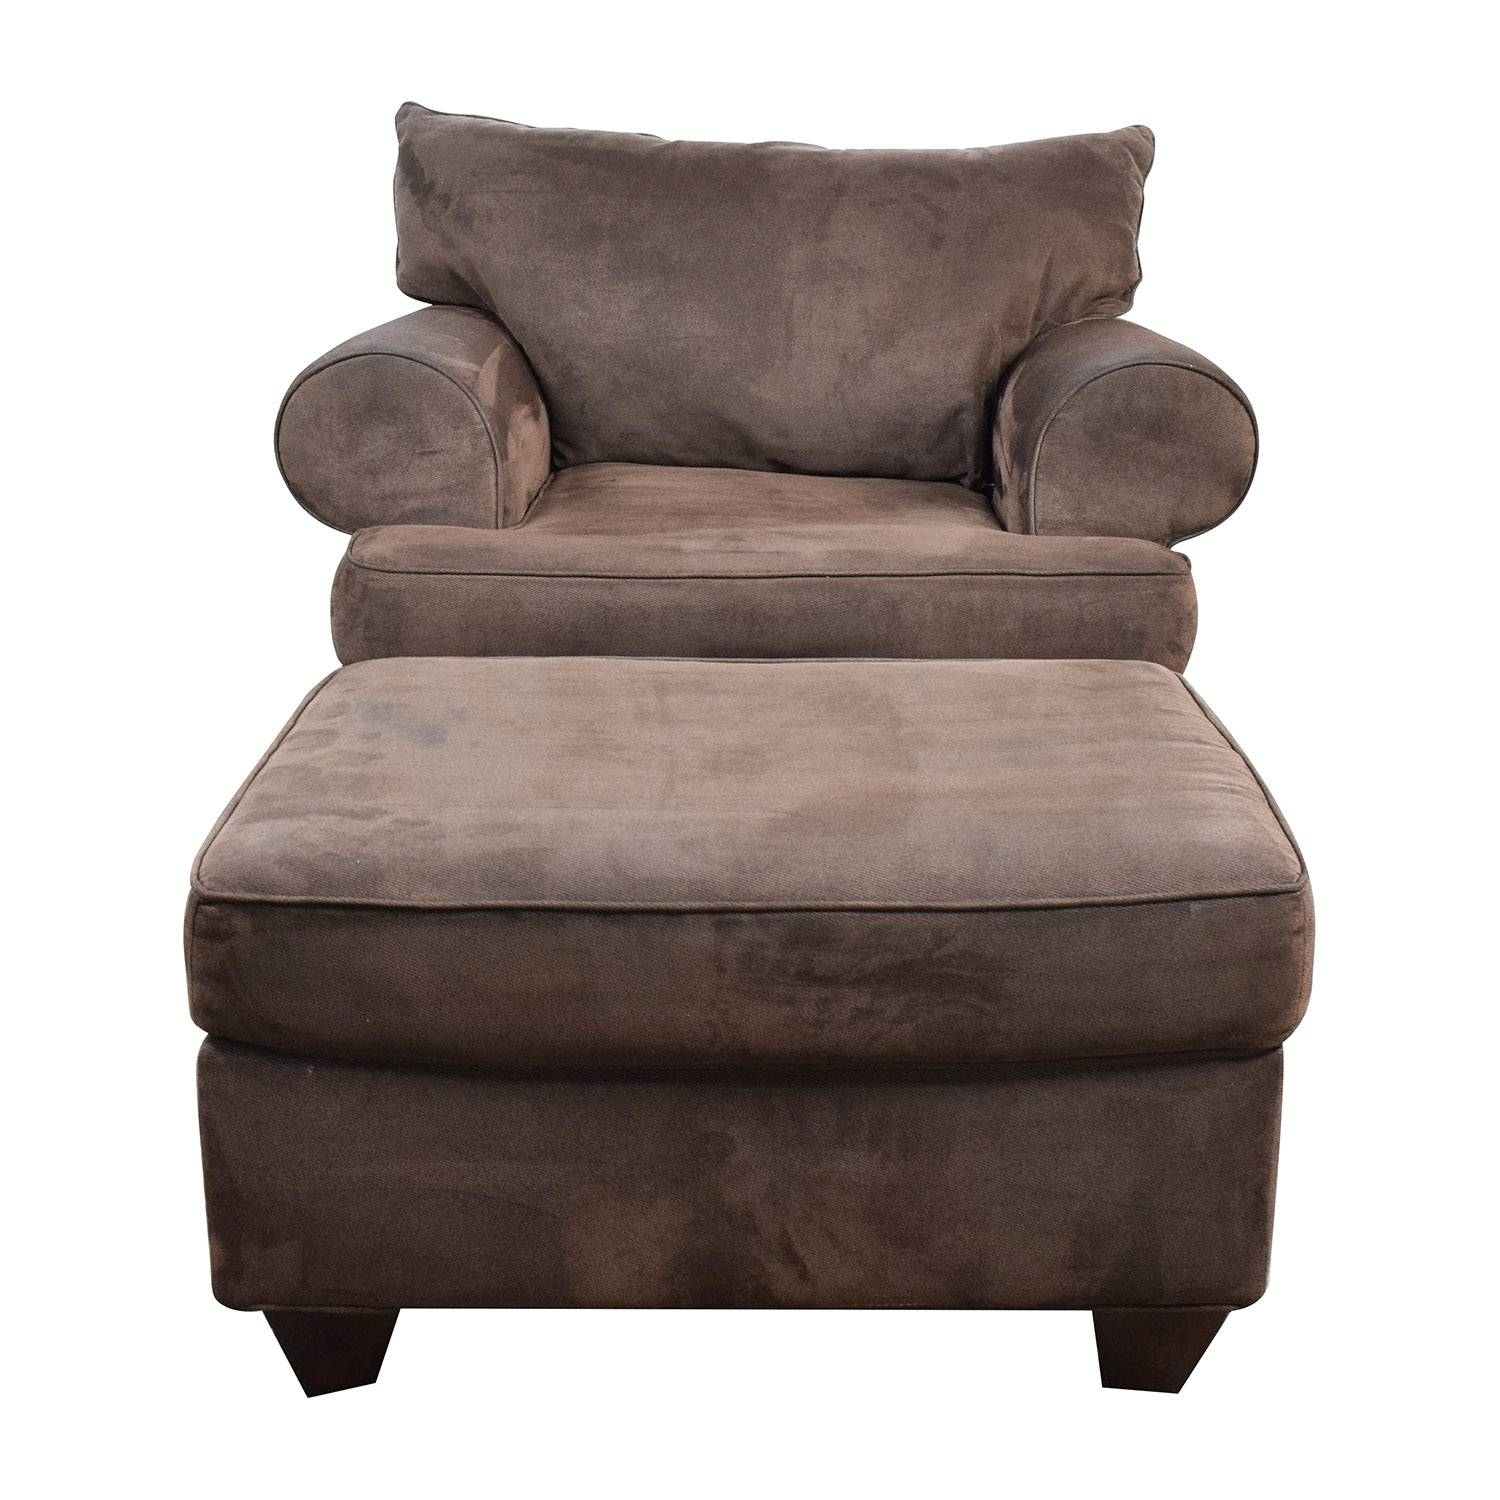 67% Off   Dark Brown Sofa Chair With Ottoman / Chairs With Regard To Sofa Chairs (Photo 3 of 30)